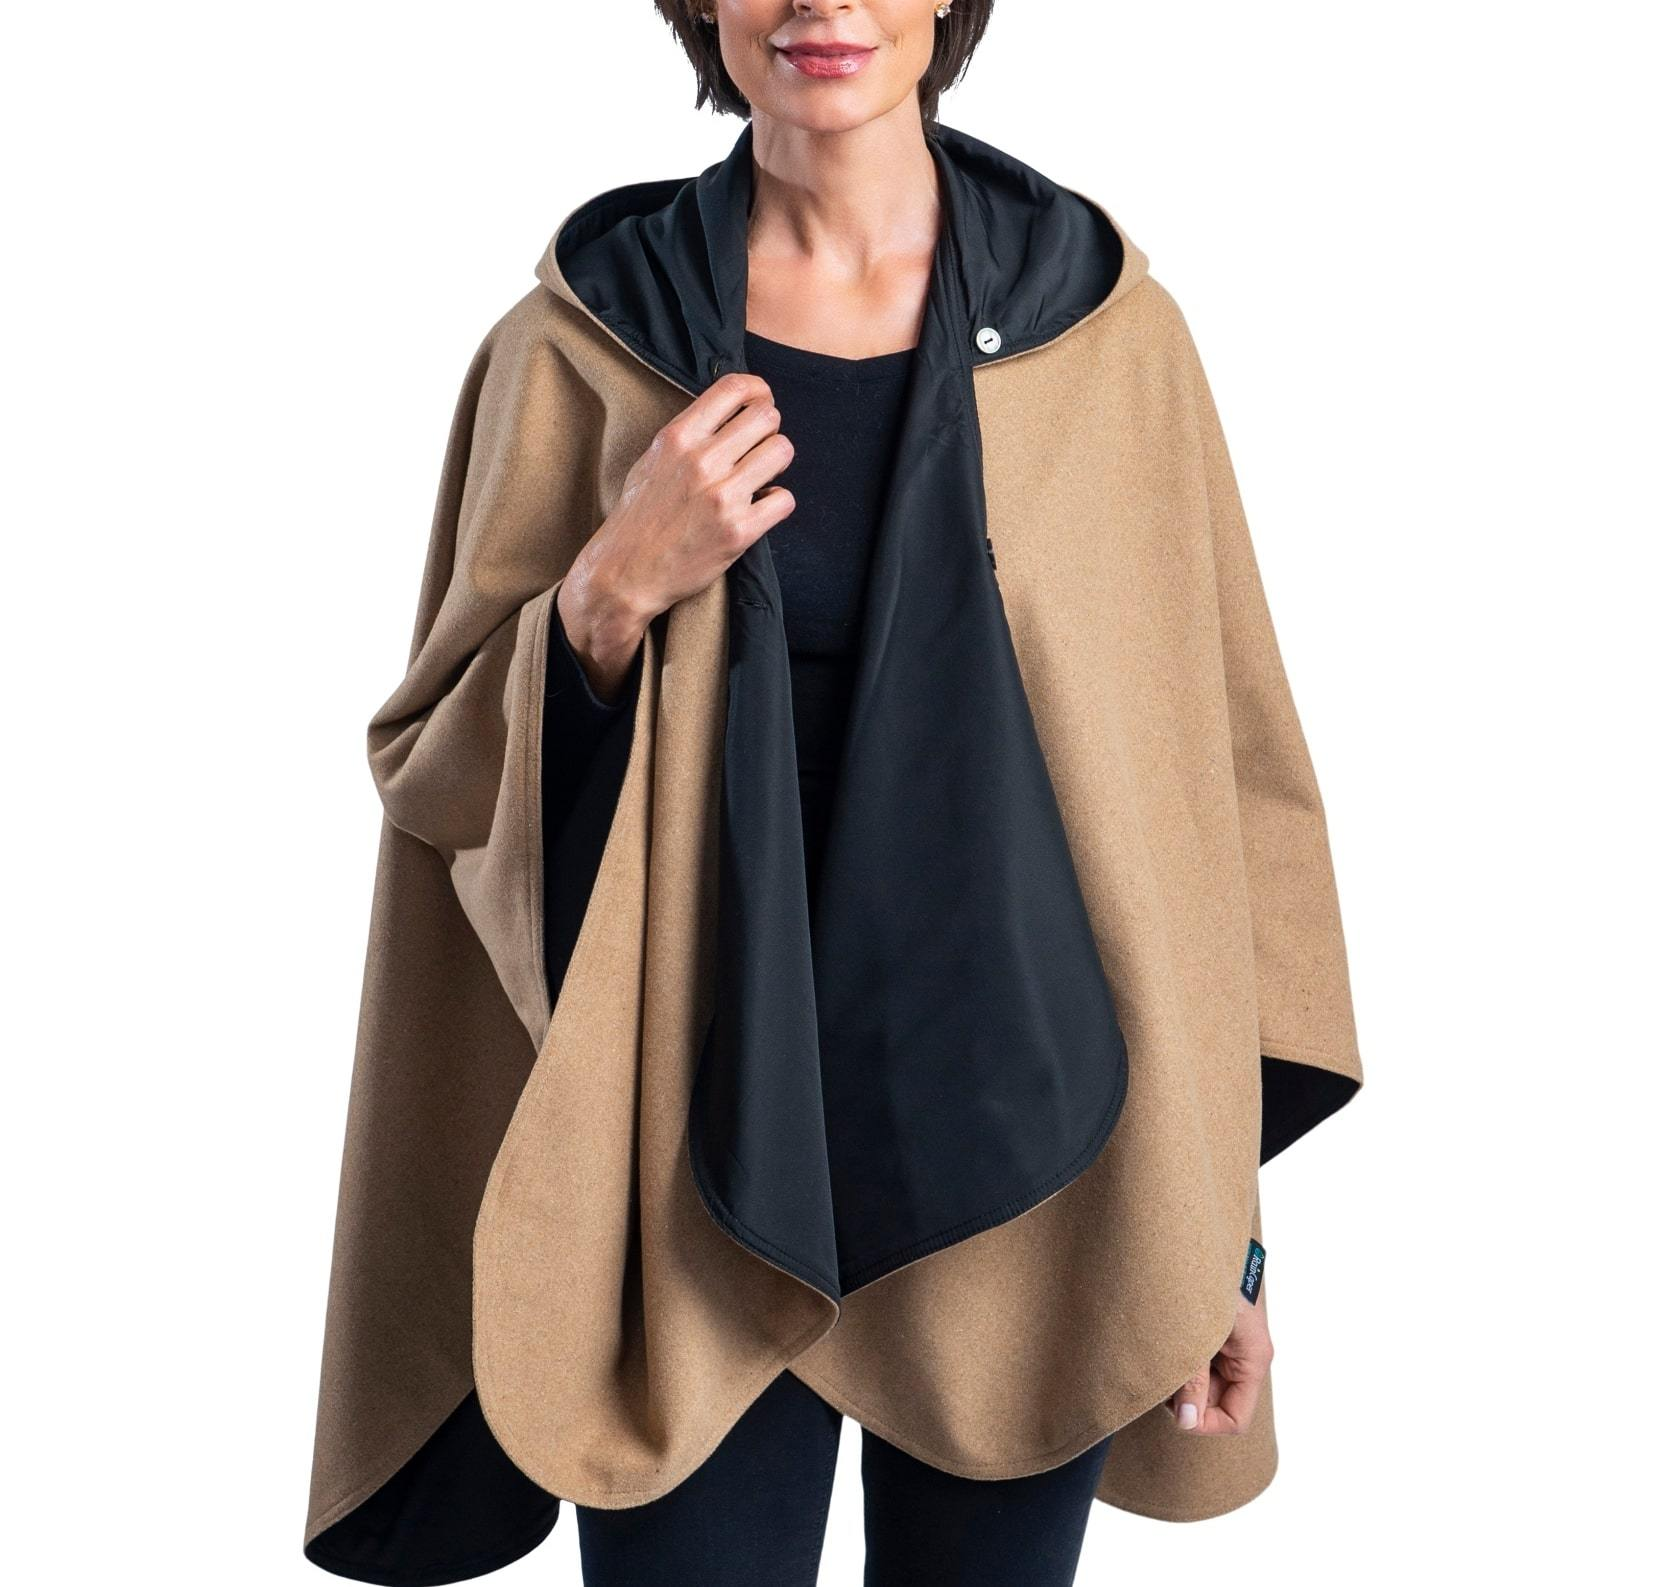 Woman wearing a WarmCaper Warm Camel/Black Rainproof and travel cape by RainCaper